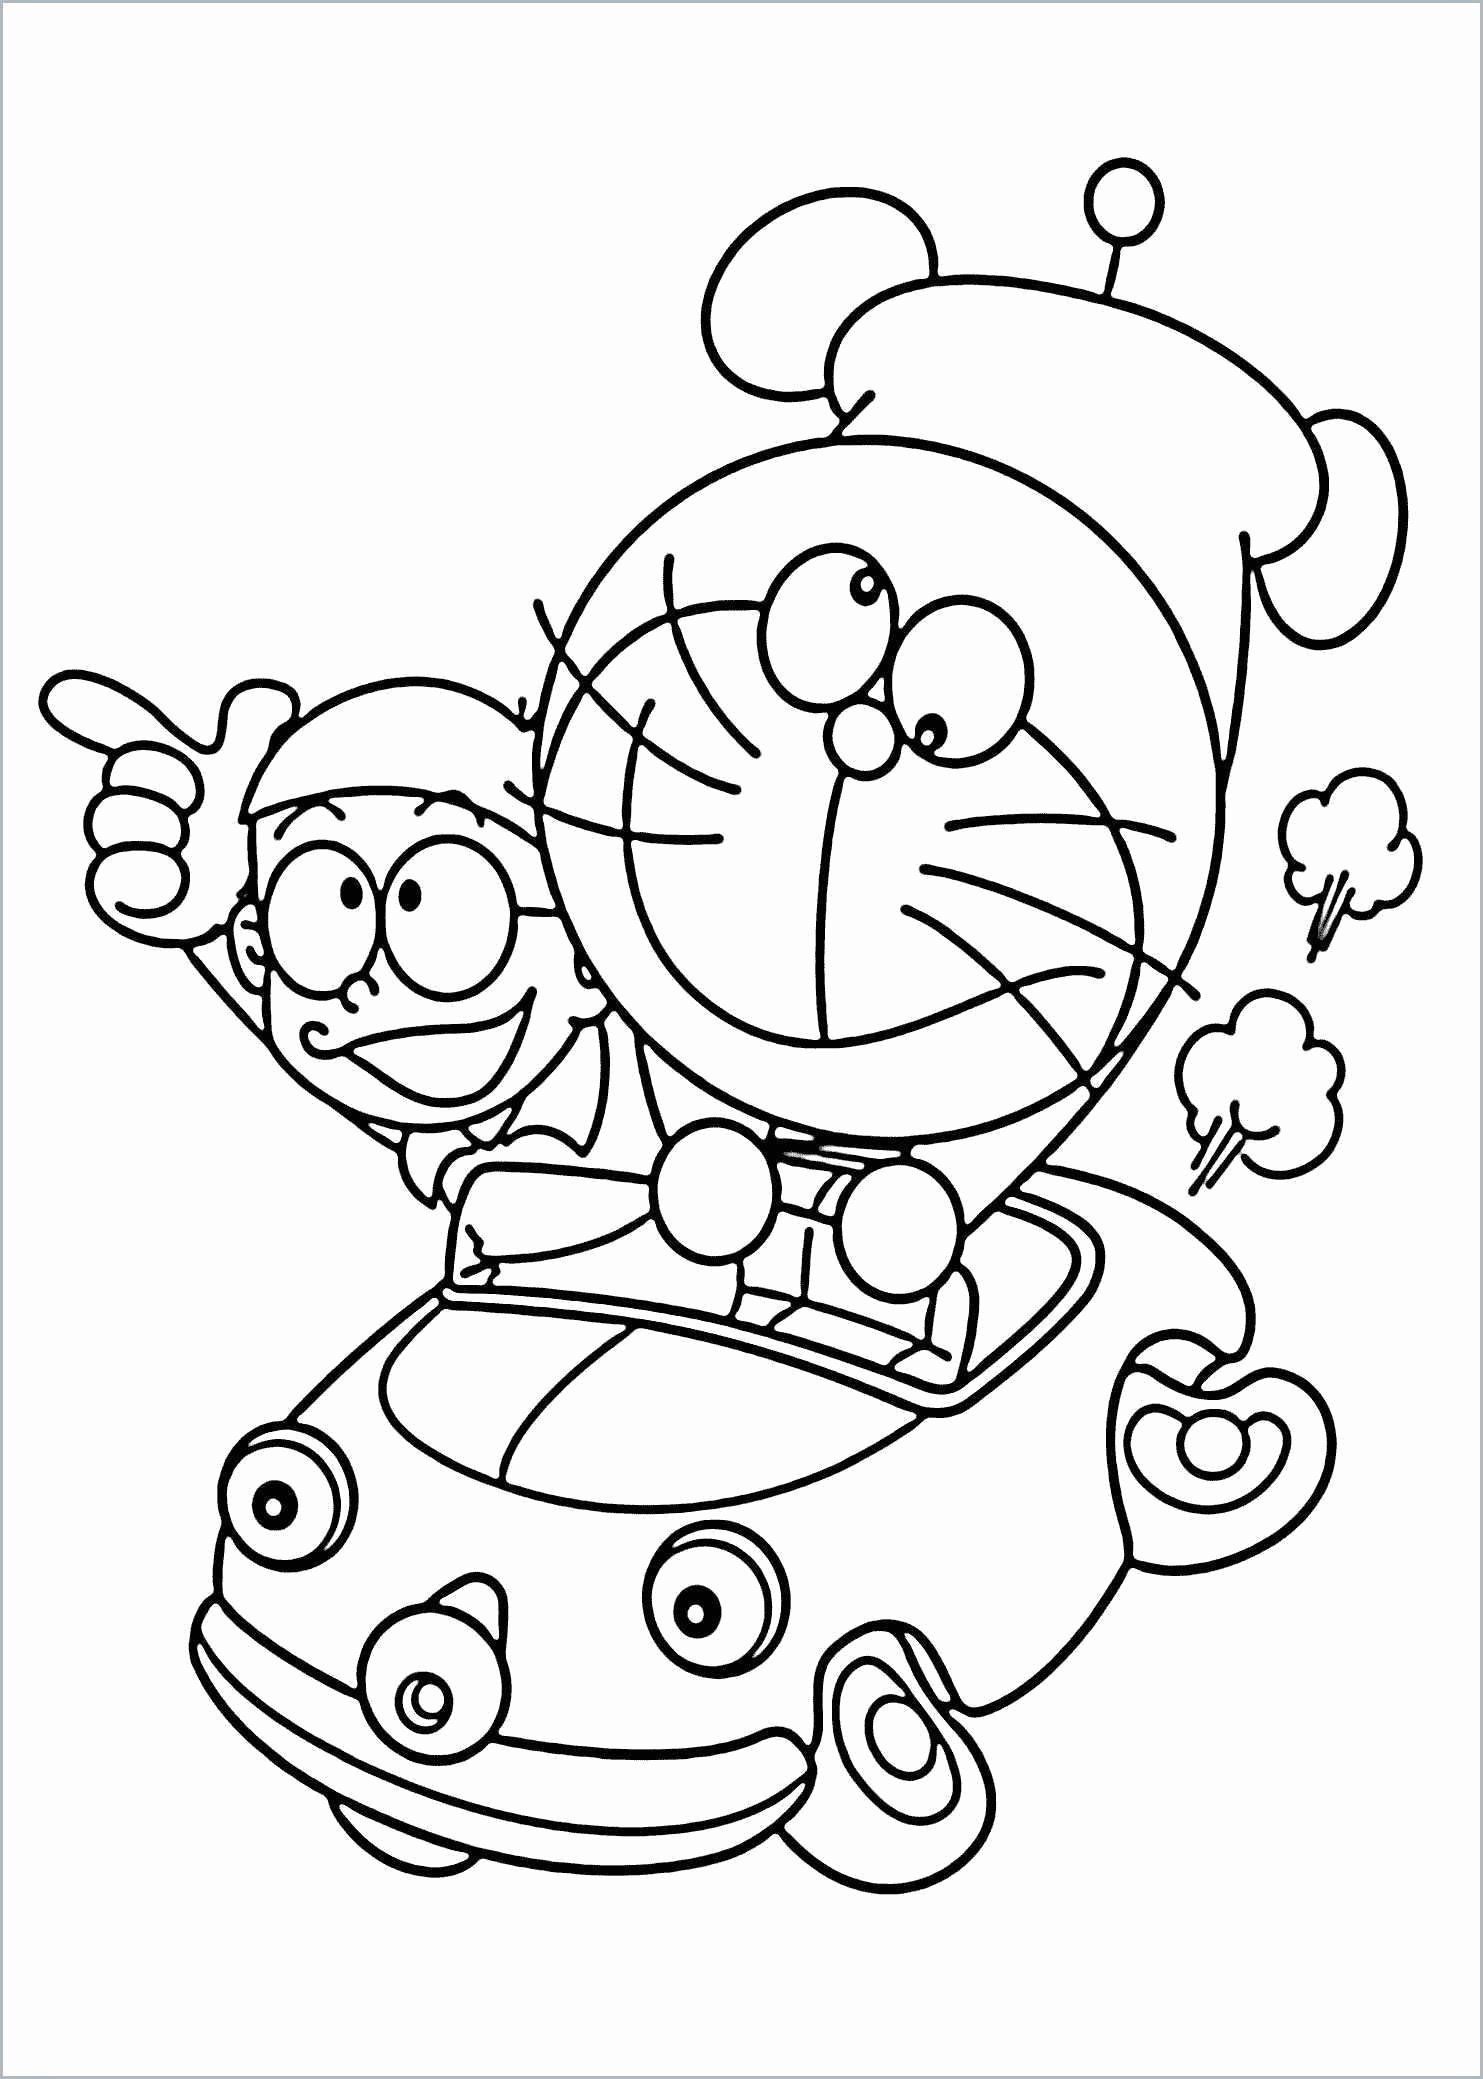 History Coloring Pages Free Lovely Best 20th Century Fox Logo Coloring Pages Kursknew Farm Animal Coloring Pages Valentine Coloring Pages Cool Coloring Pages